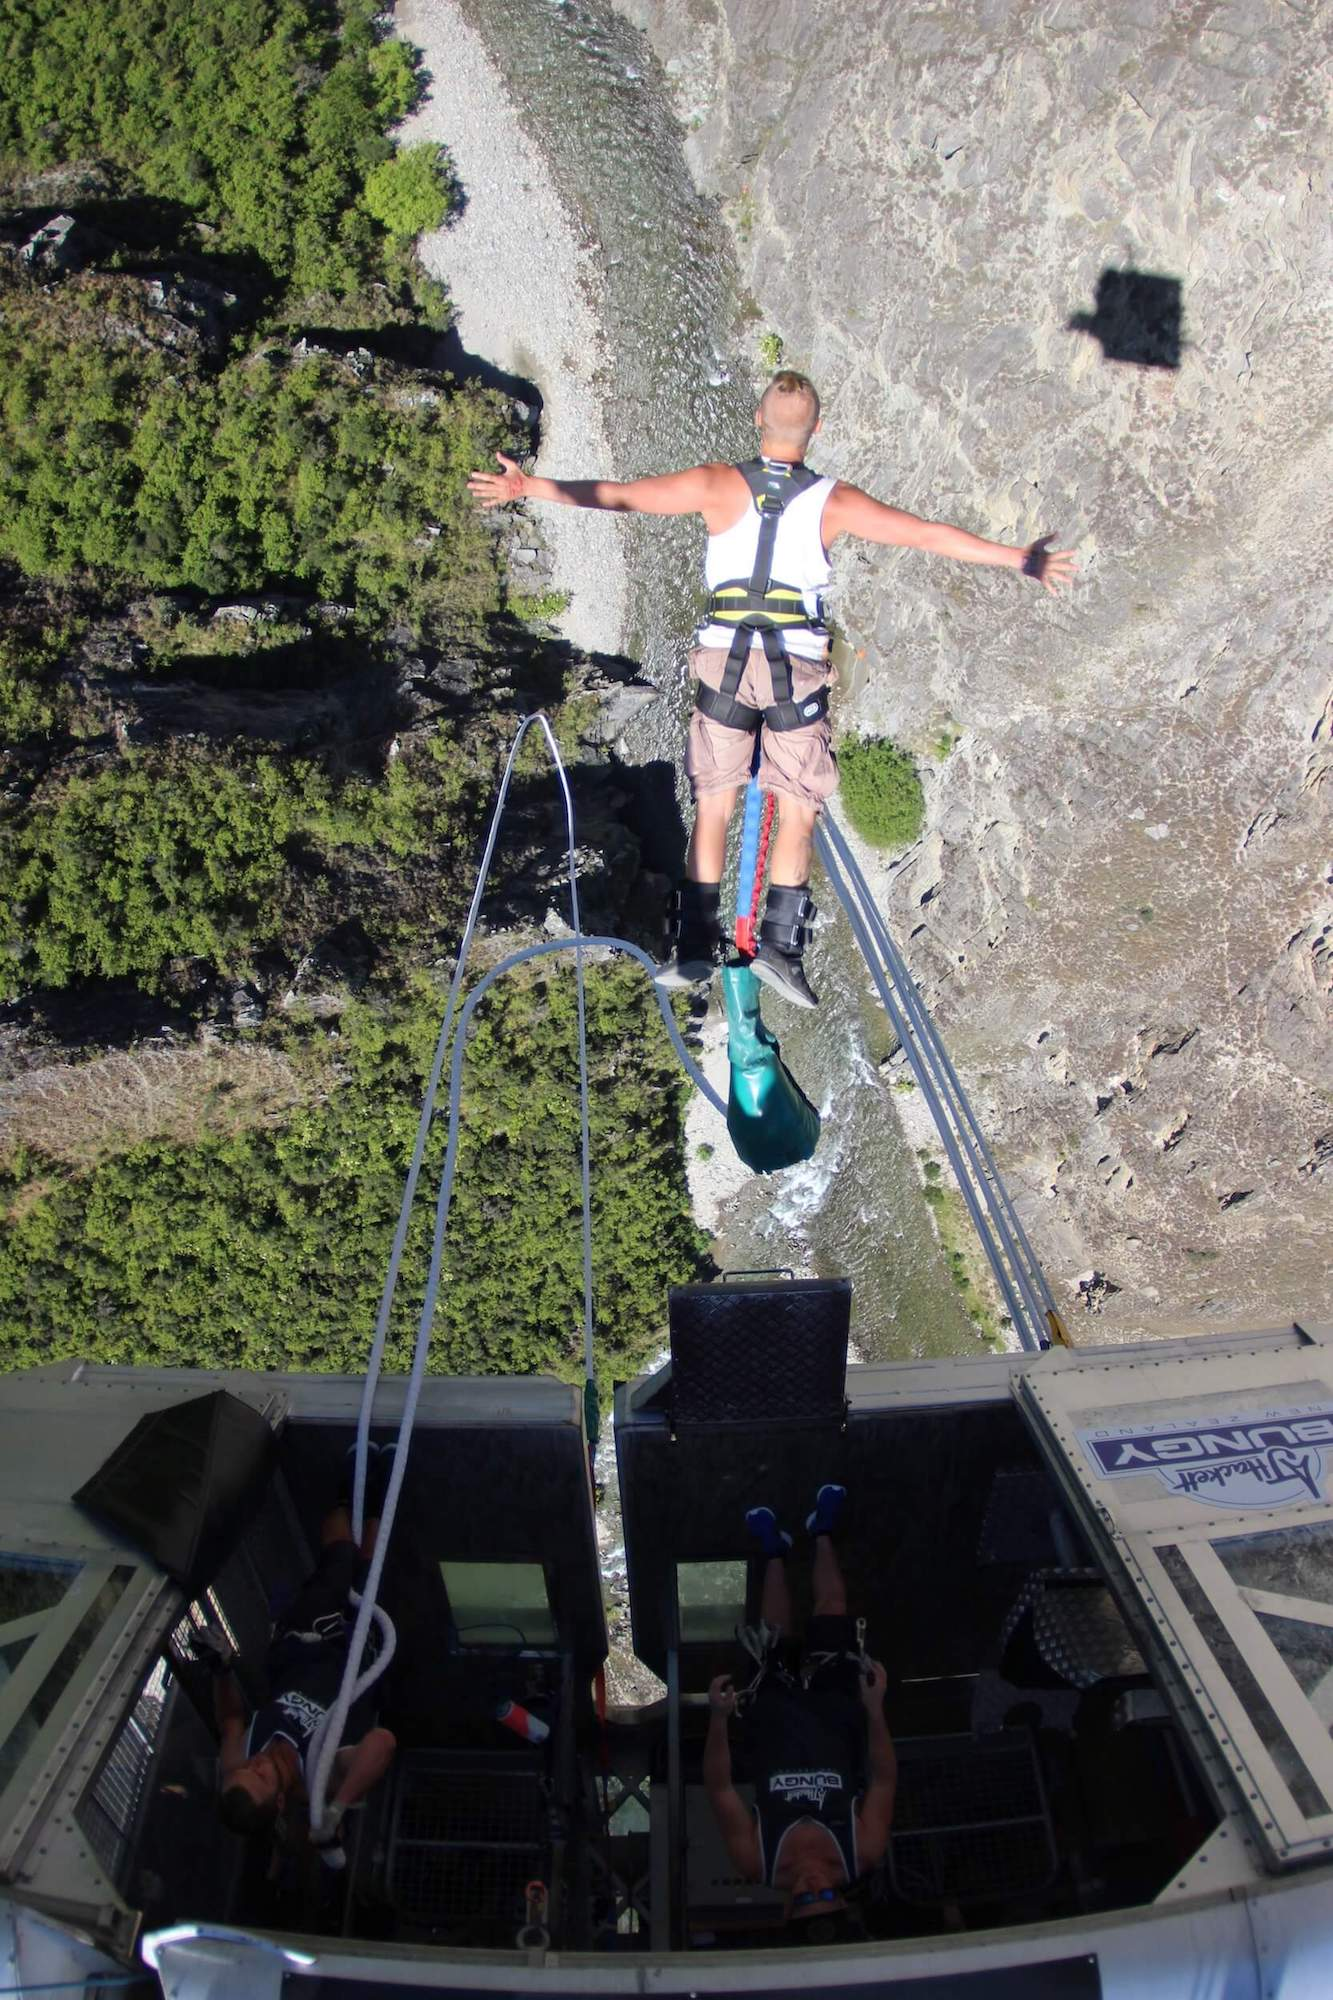 NEVIS BUNGY - THE JUMP!